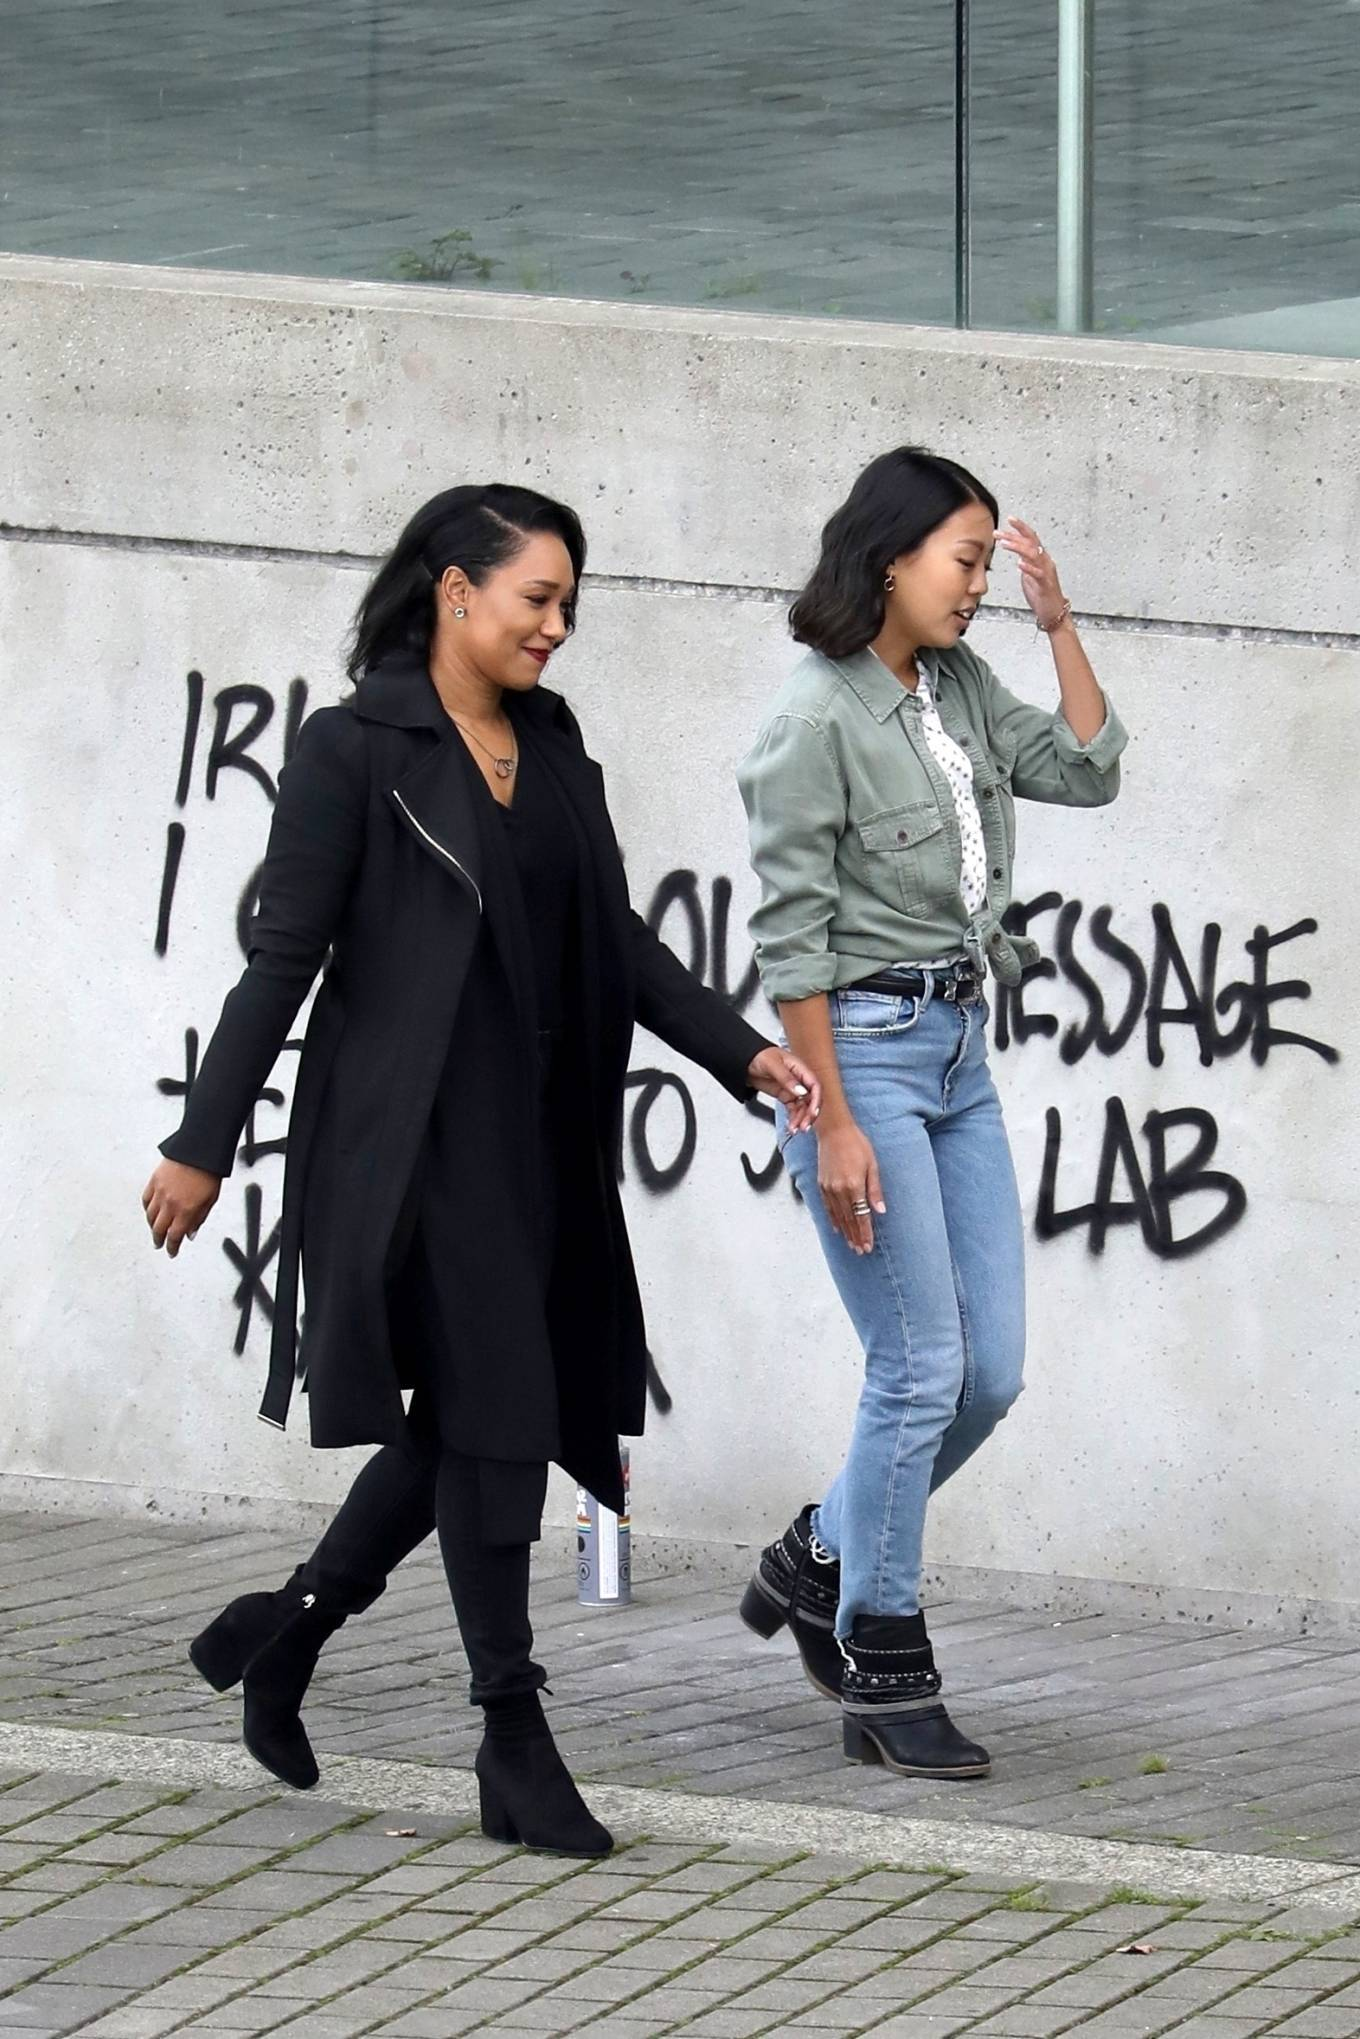 Candice Patton - Filming 'The Flash' season 7 with co-star Victoria Park in Vancouver